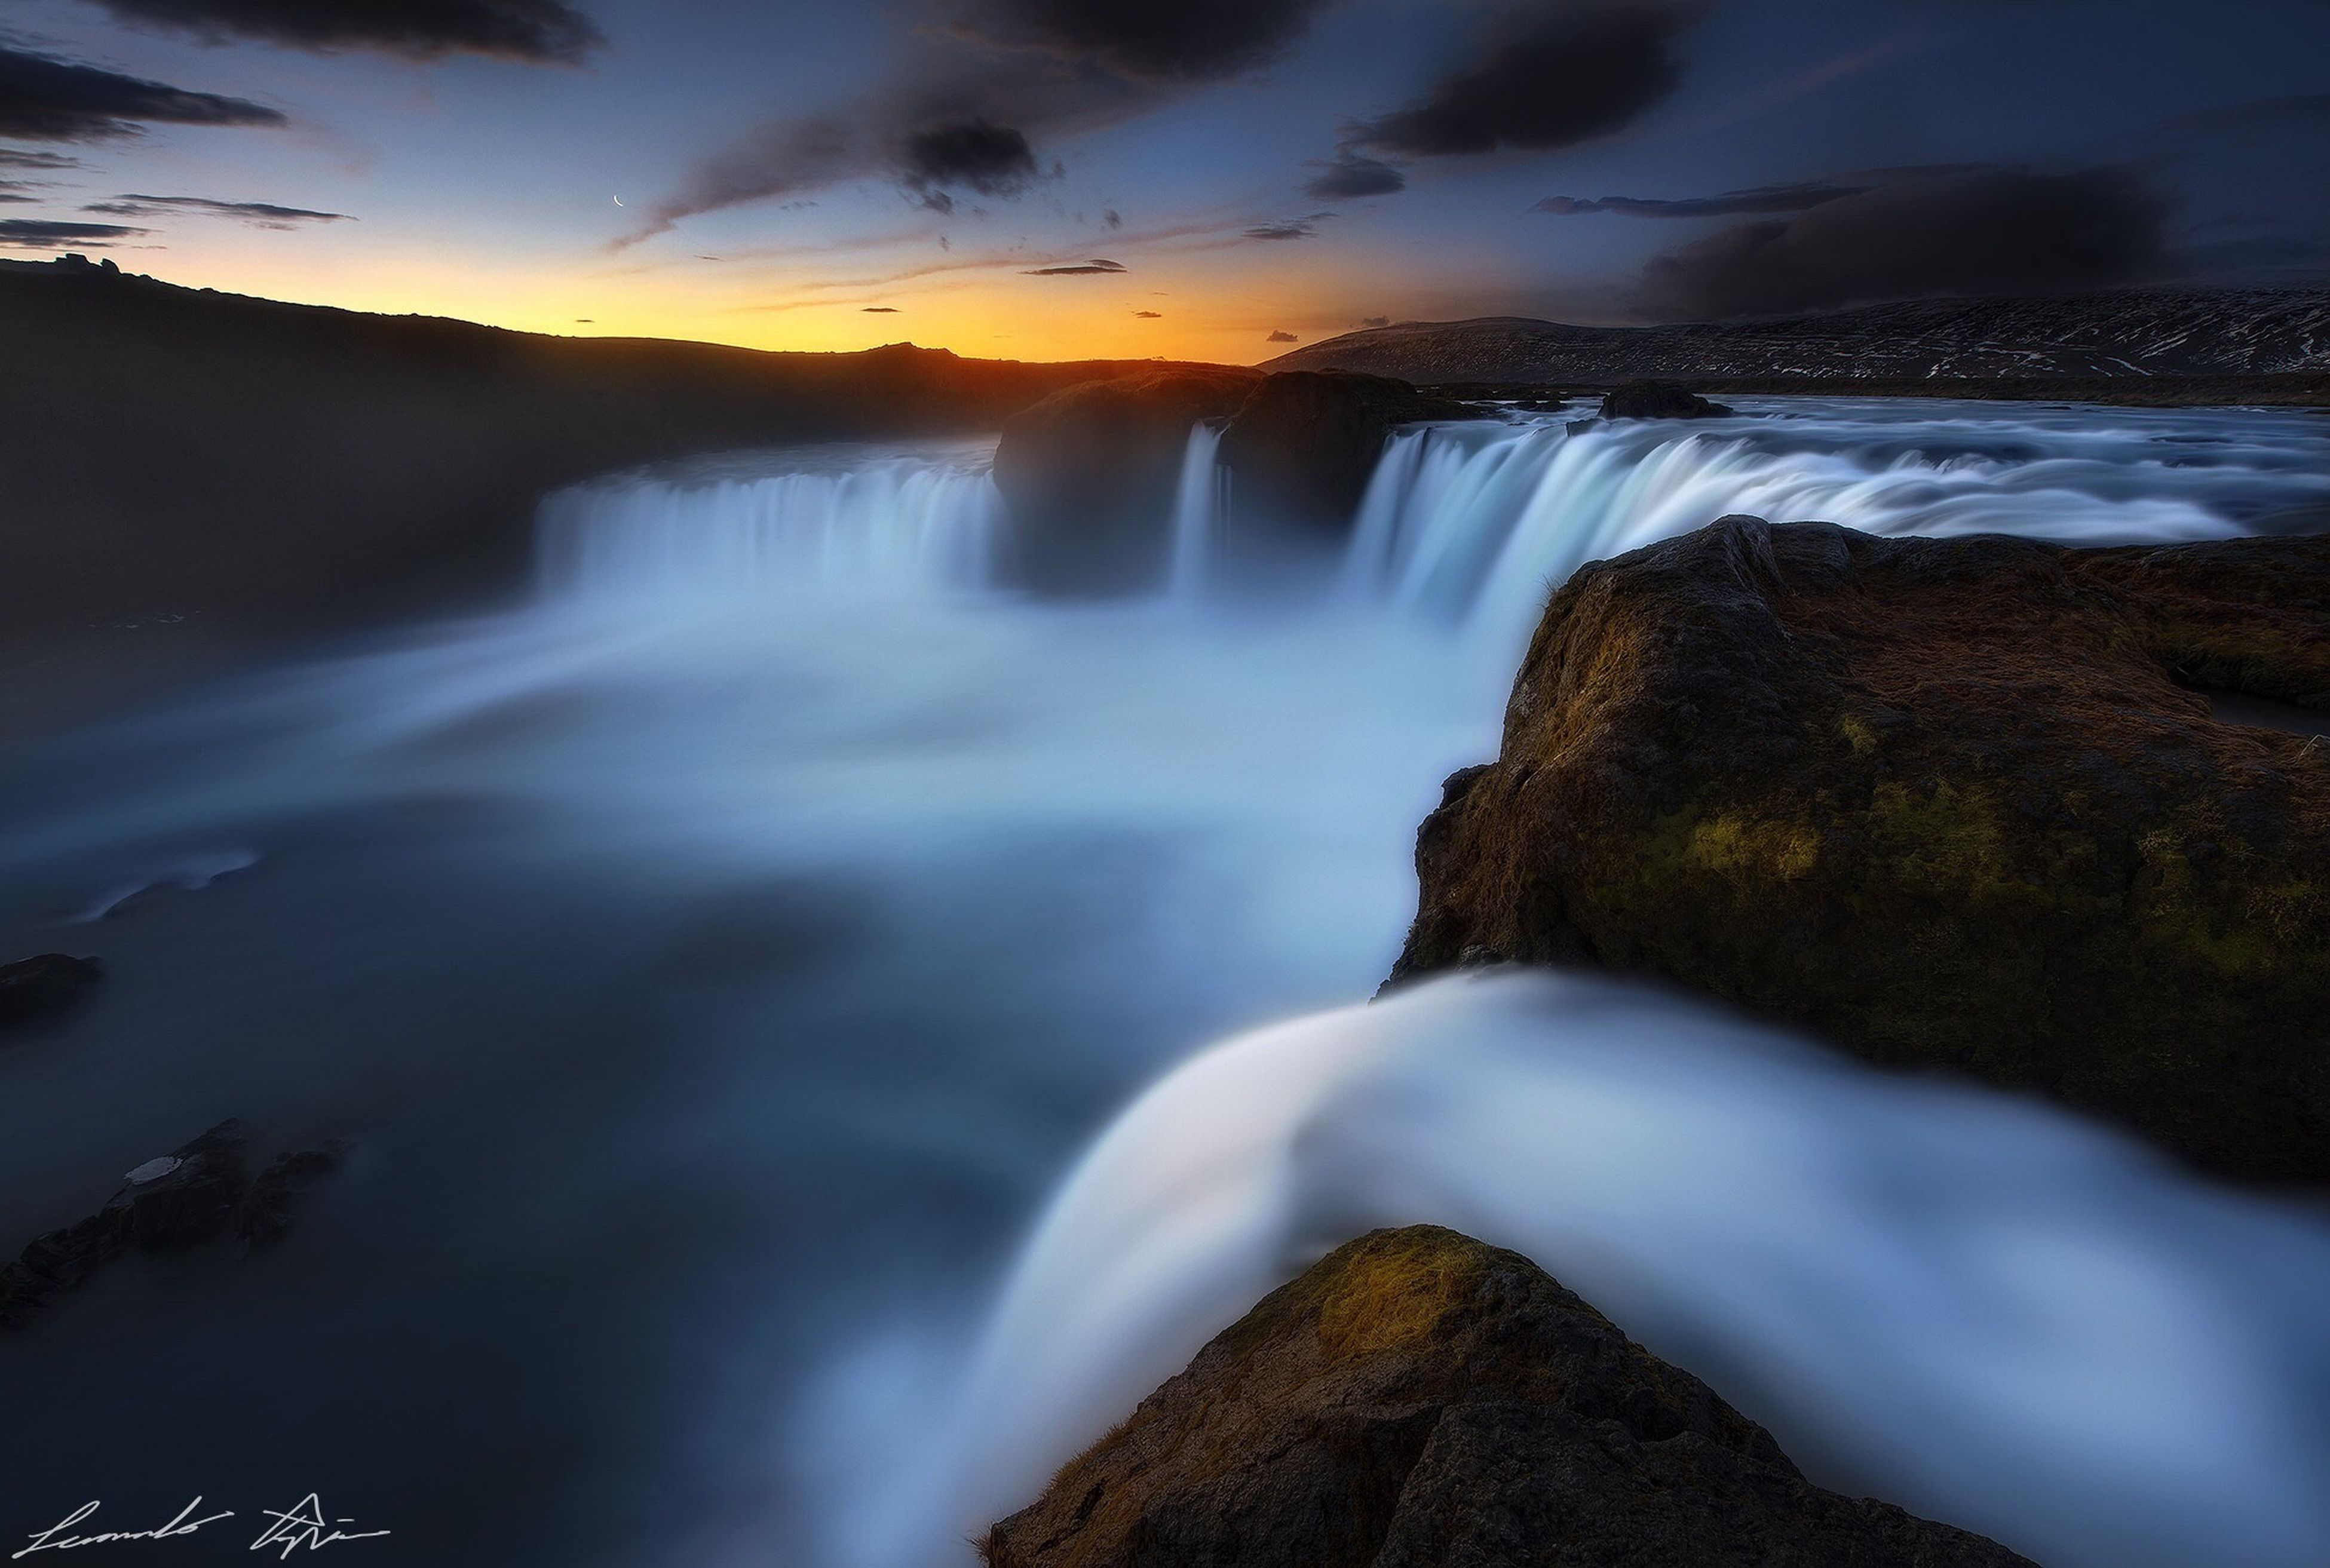 water, scenics, beauty in nature, long exposure, sky, motion, nature, cloud - sky, tranquil scene, waterfall, rock - object, flowing water, flowing, power in nature, tranquility, idyllic, sunset, mountain, river, blurred motion